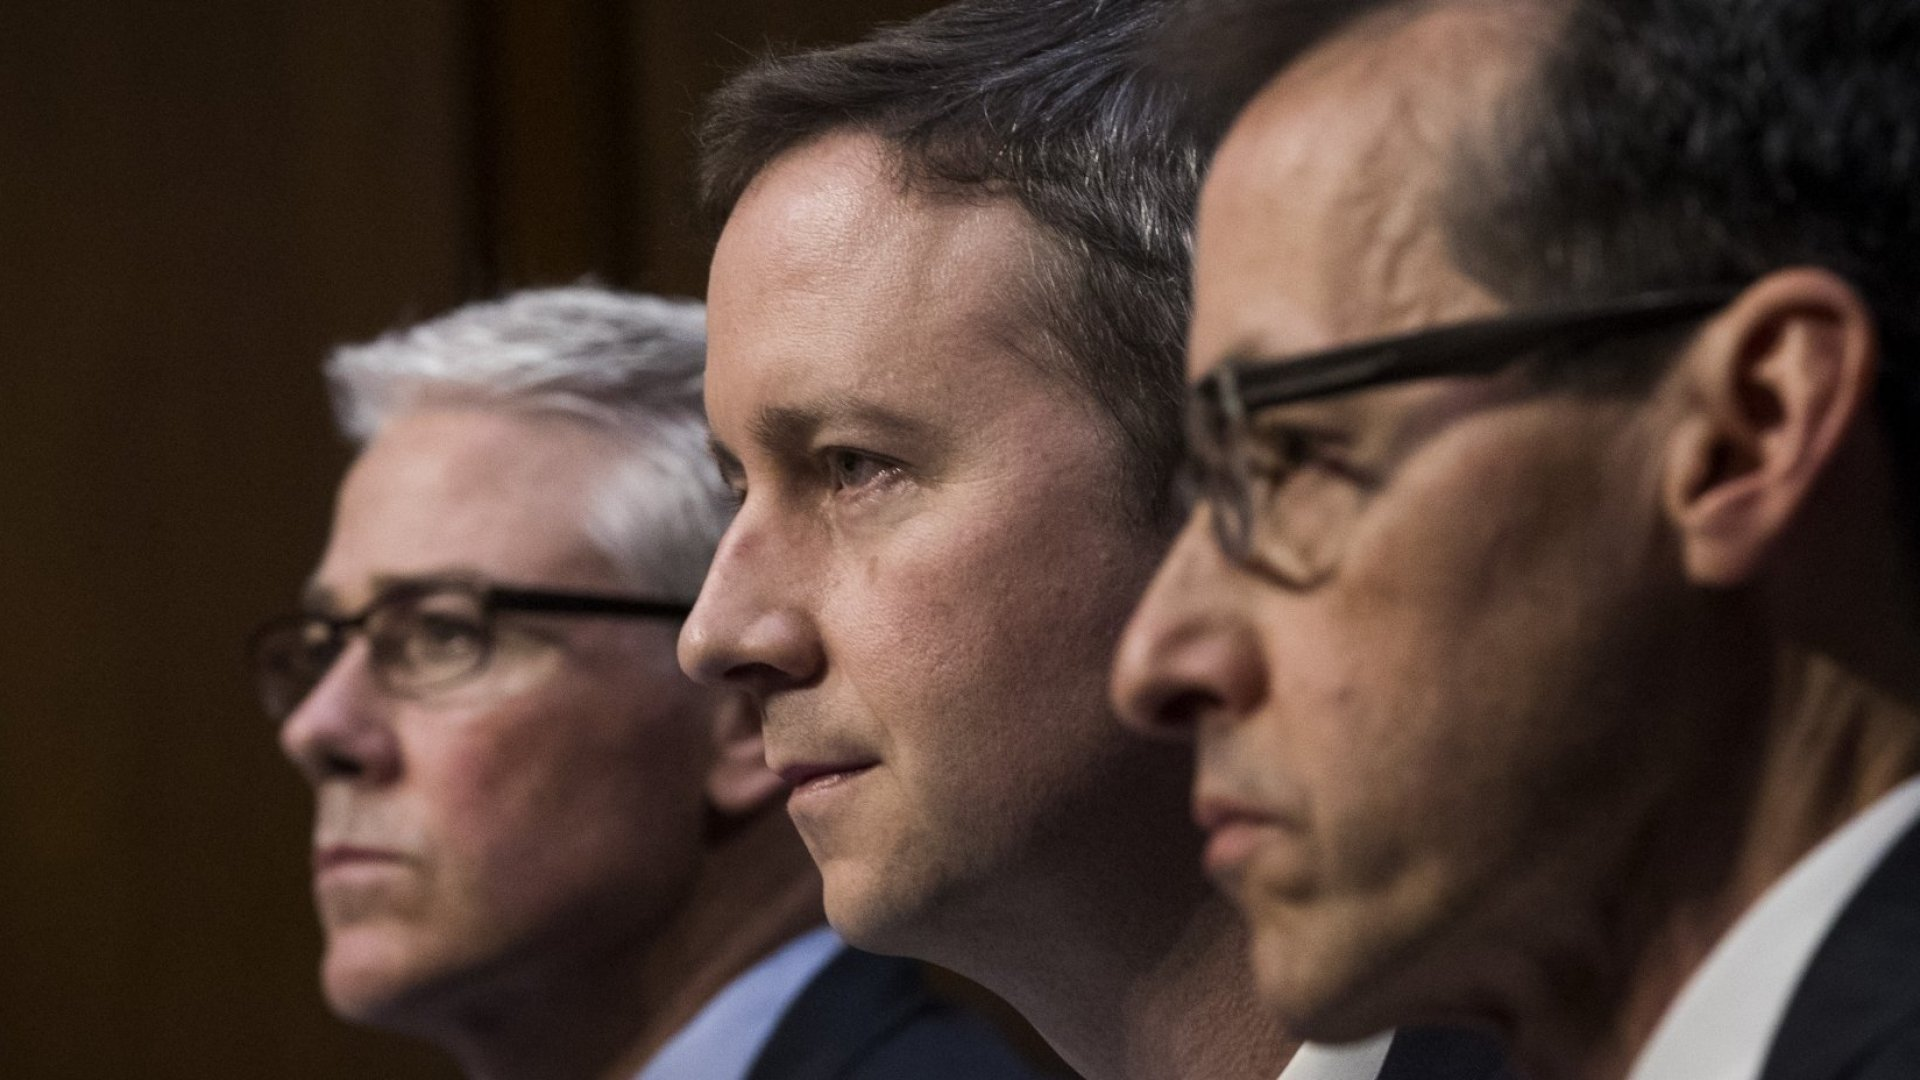 Executives from Facebook, Google, and Twitter appear before Congress